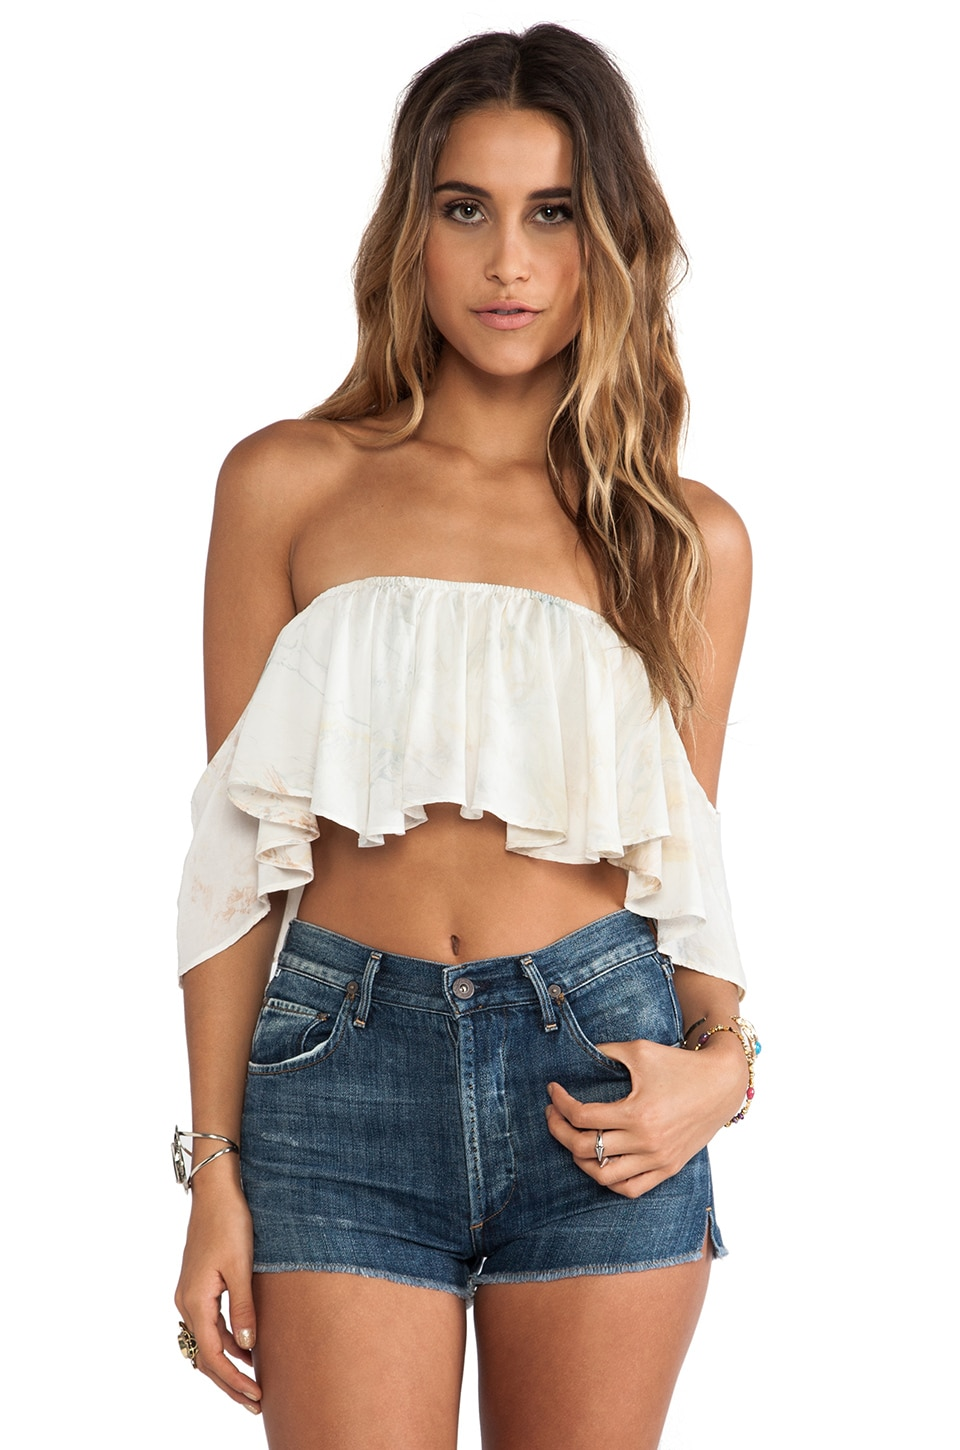 Blue Life Kiss Me Crop Top in Natural Marble